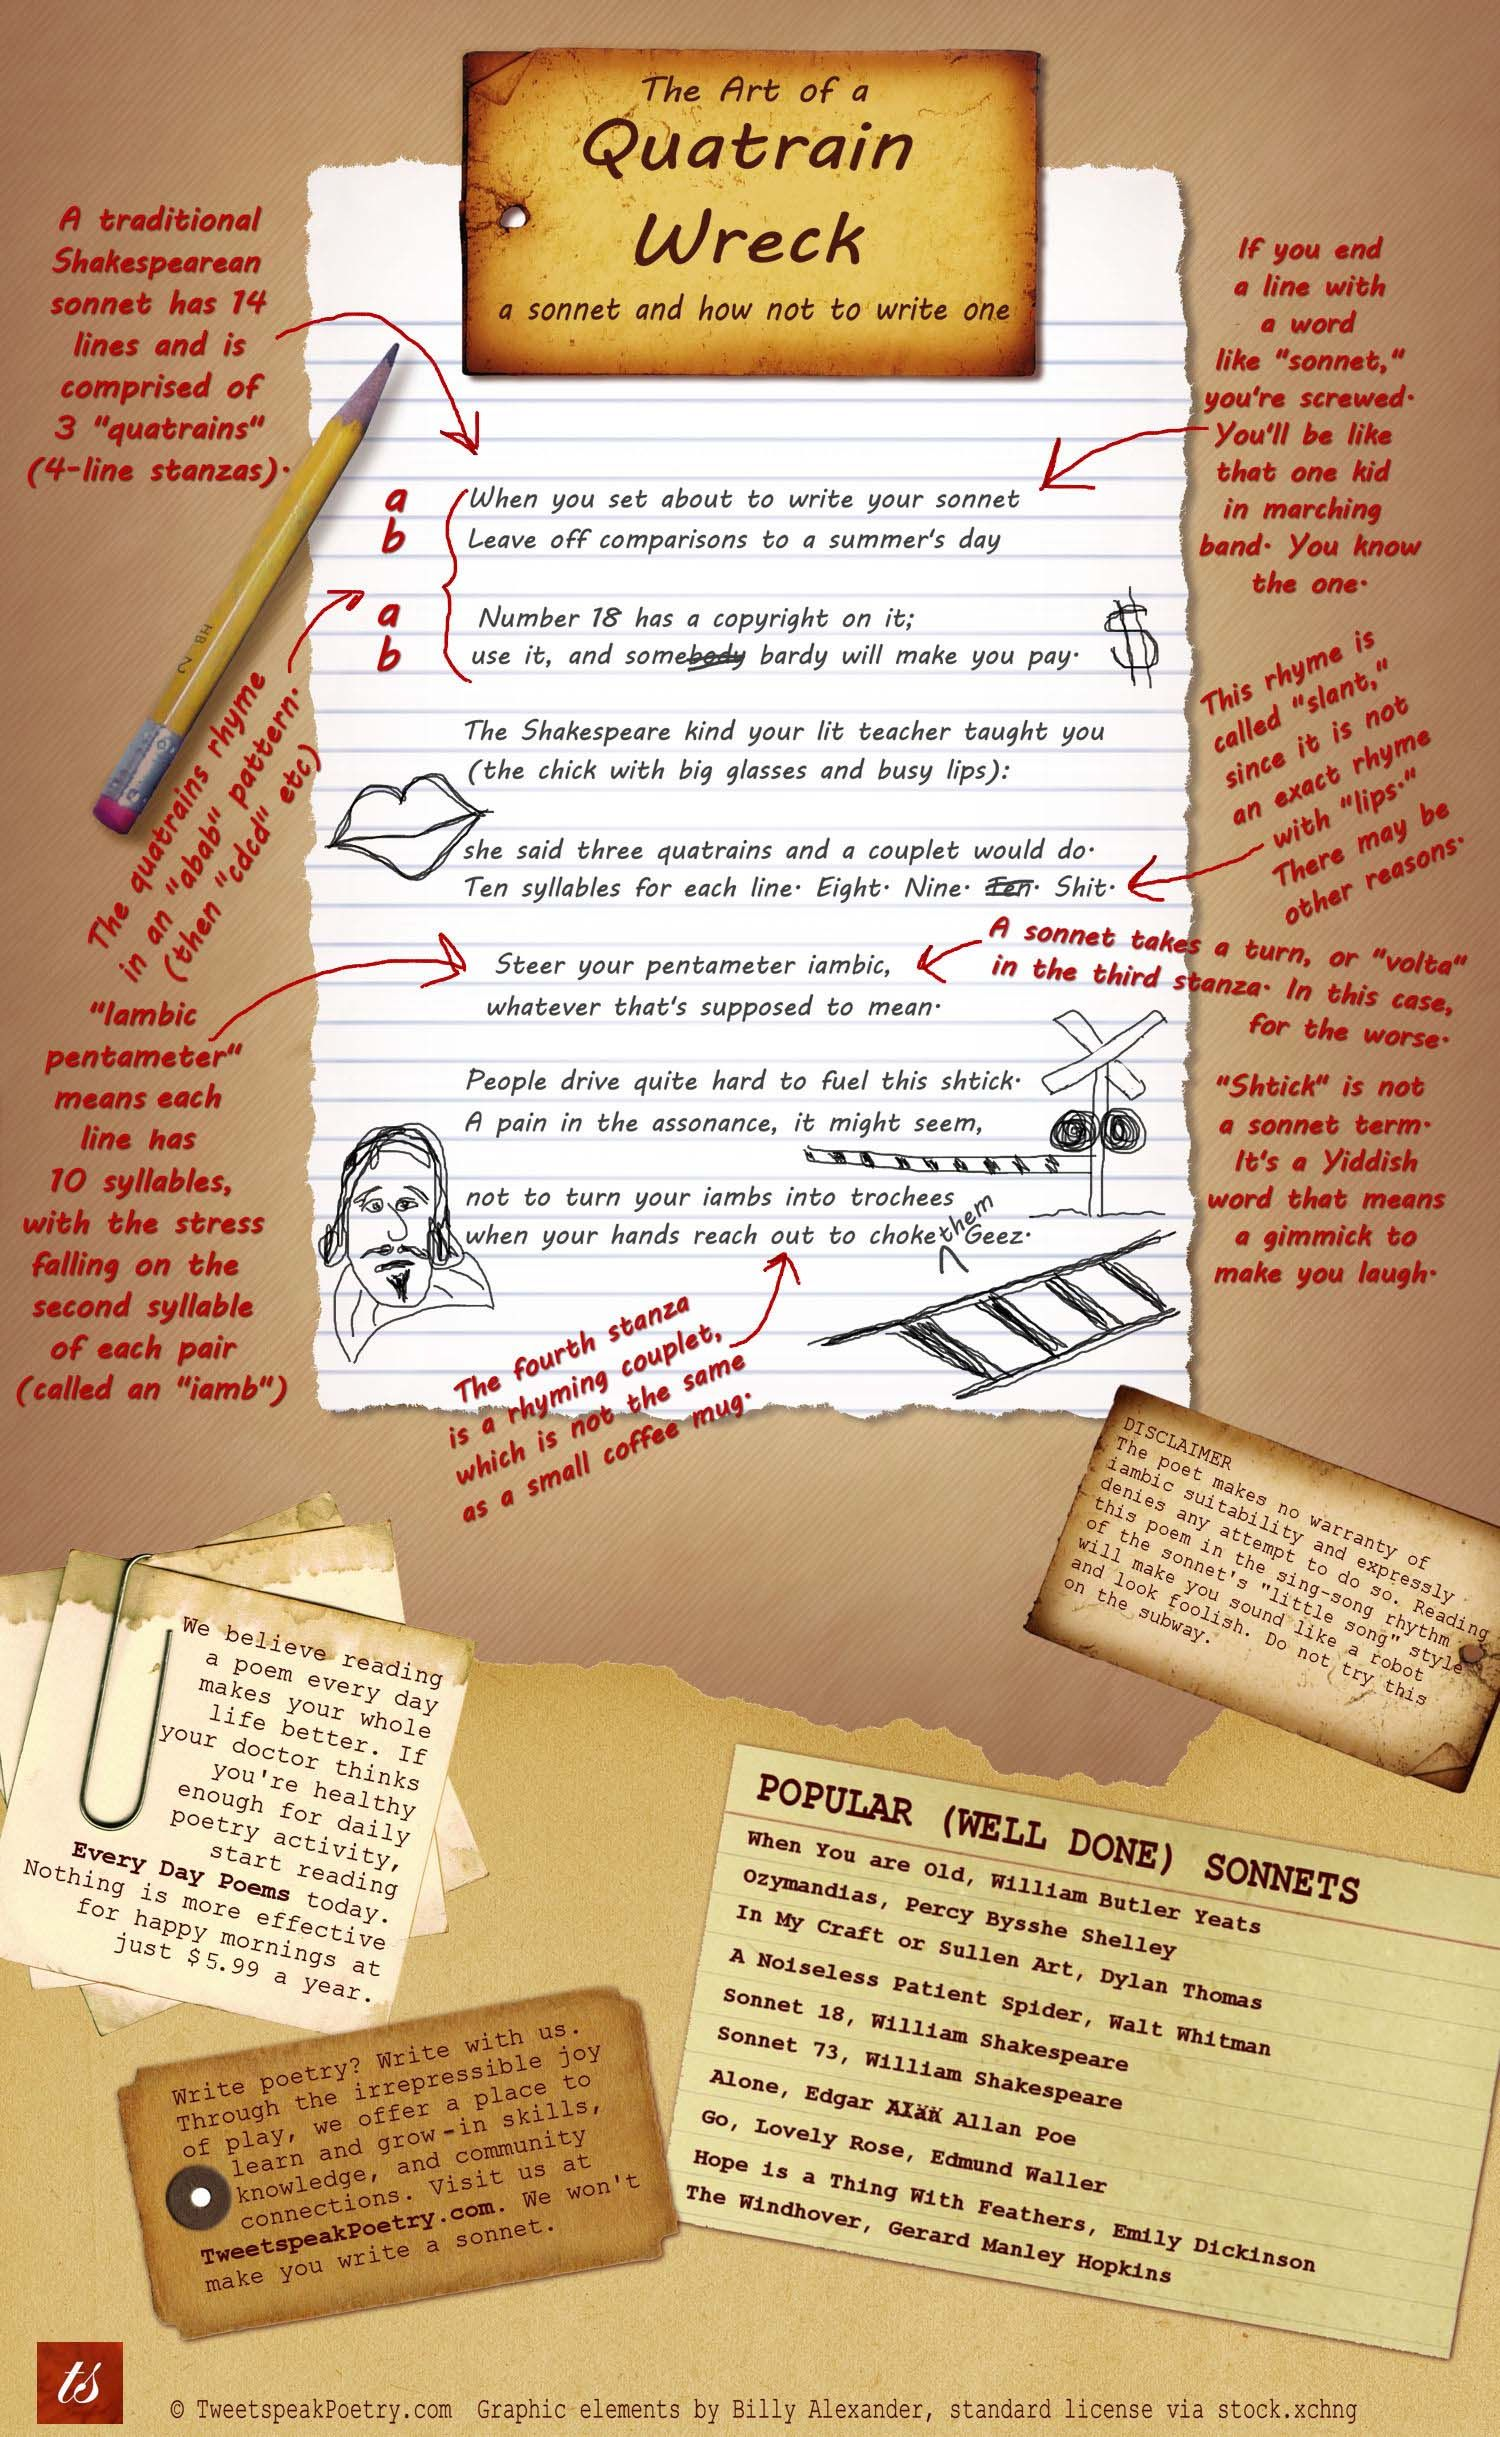 How to Write a Sonnet - Fun Infographic from Tweetspeak, New York